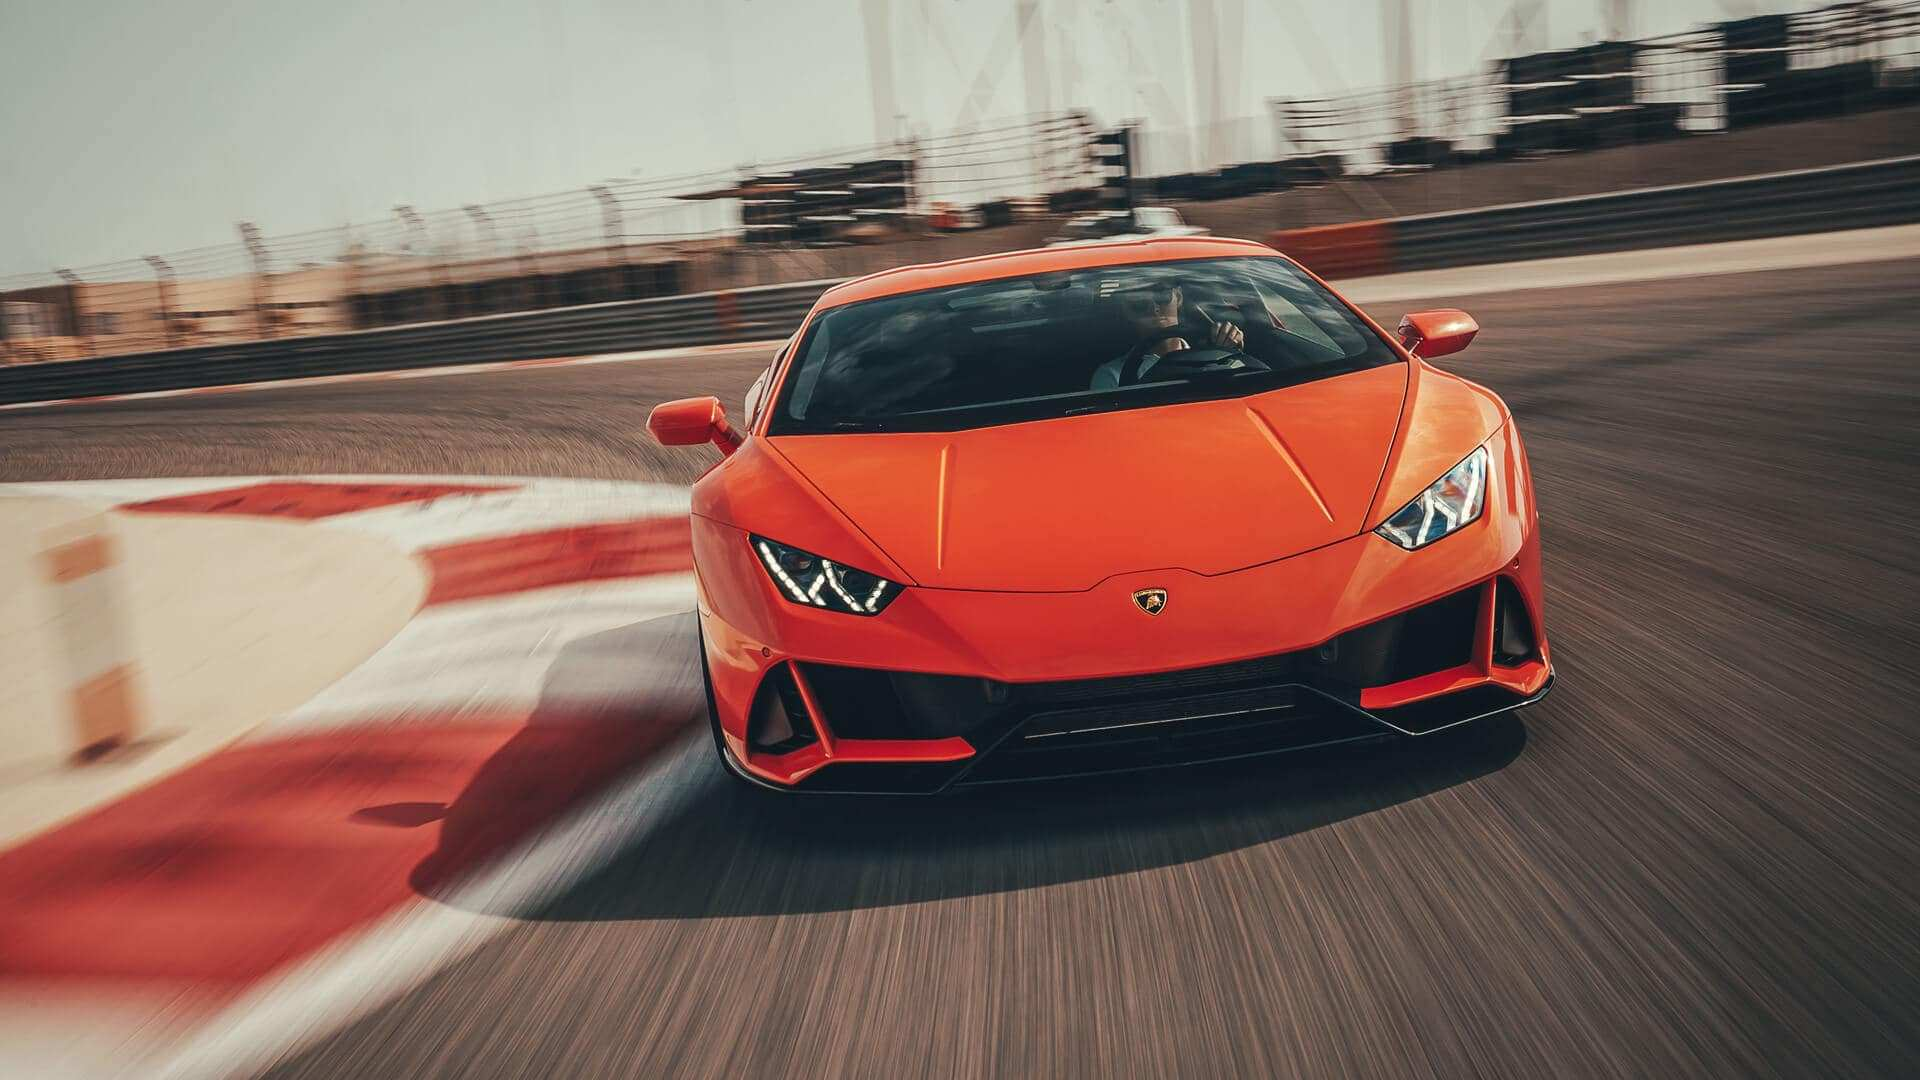 61 New 2020 Lamborghini Huracan Price And Release Date